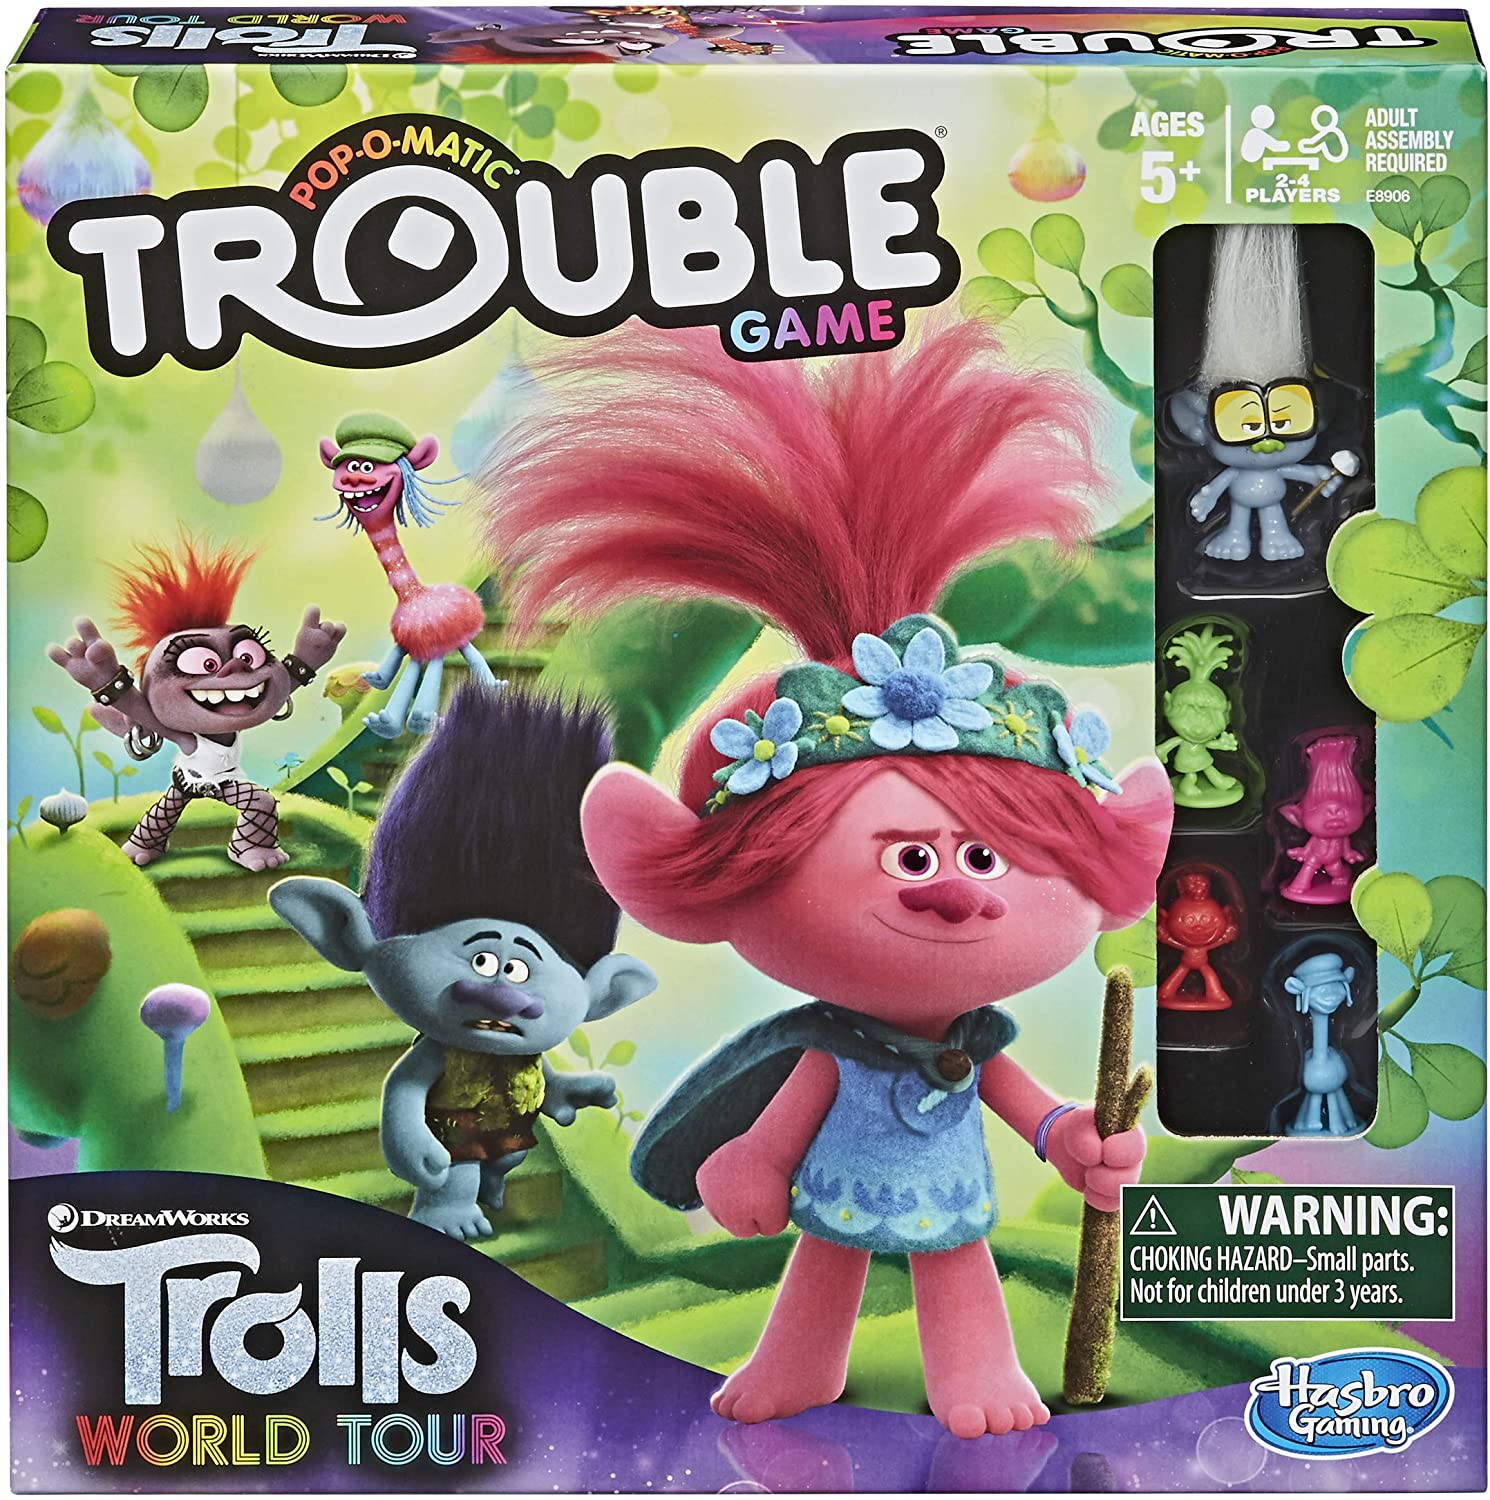 Amazon Com Trouble Dreamworks Trolls World Tour Edition Board Game For Kids Ages 5 And Up Includes Tiny Diamond Figure With Hair Model E8906 Toys Games